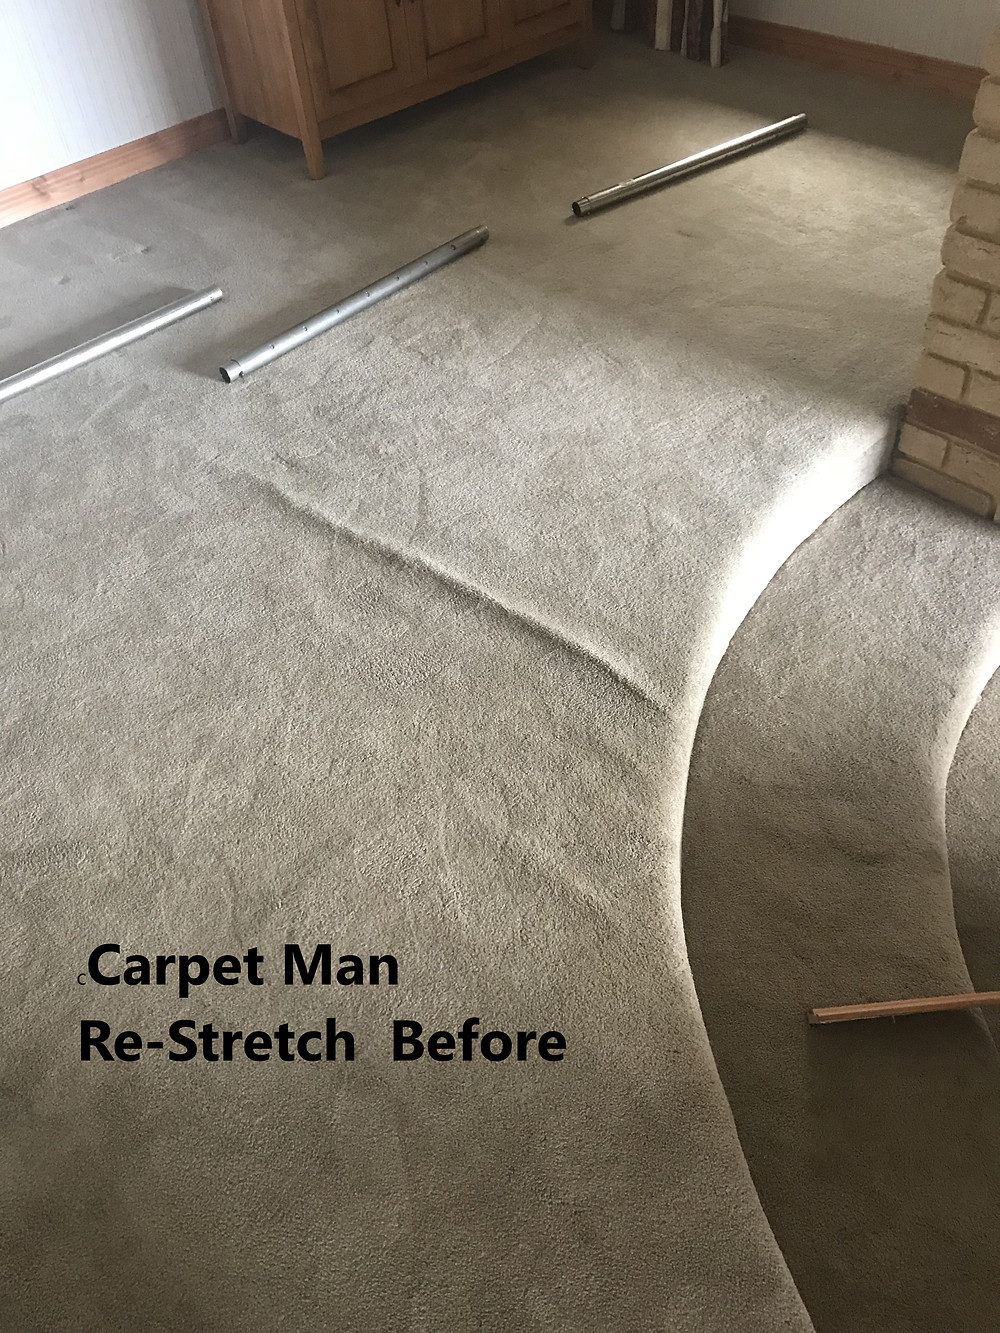 carpet has rippled and requires a power stretcher